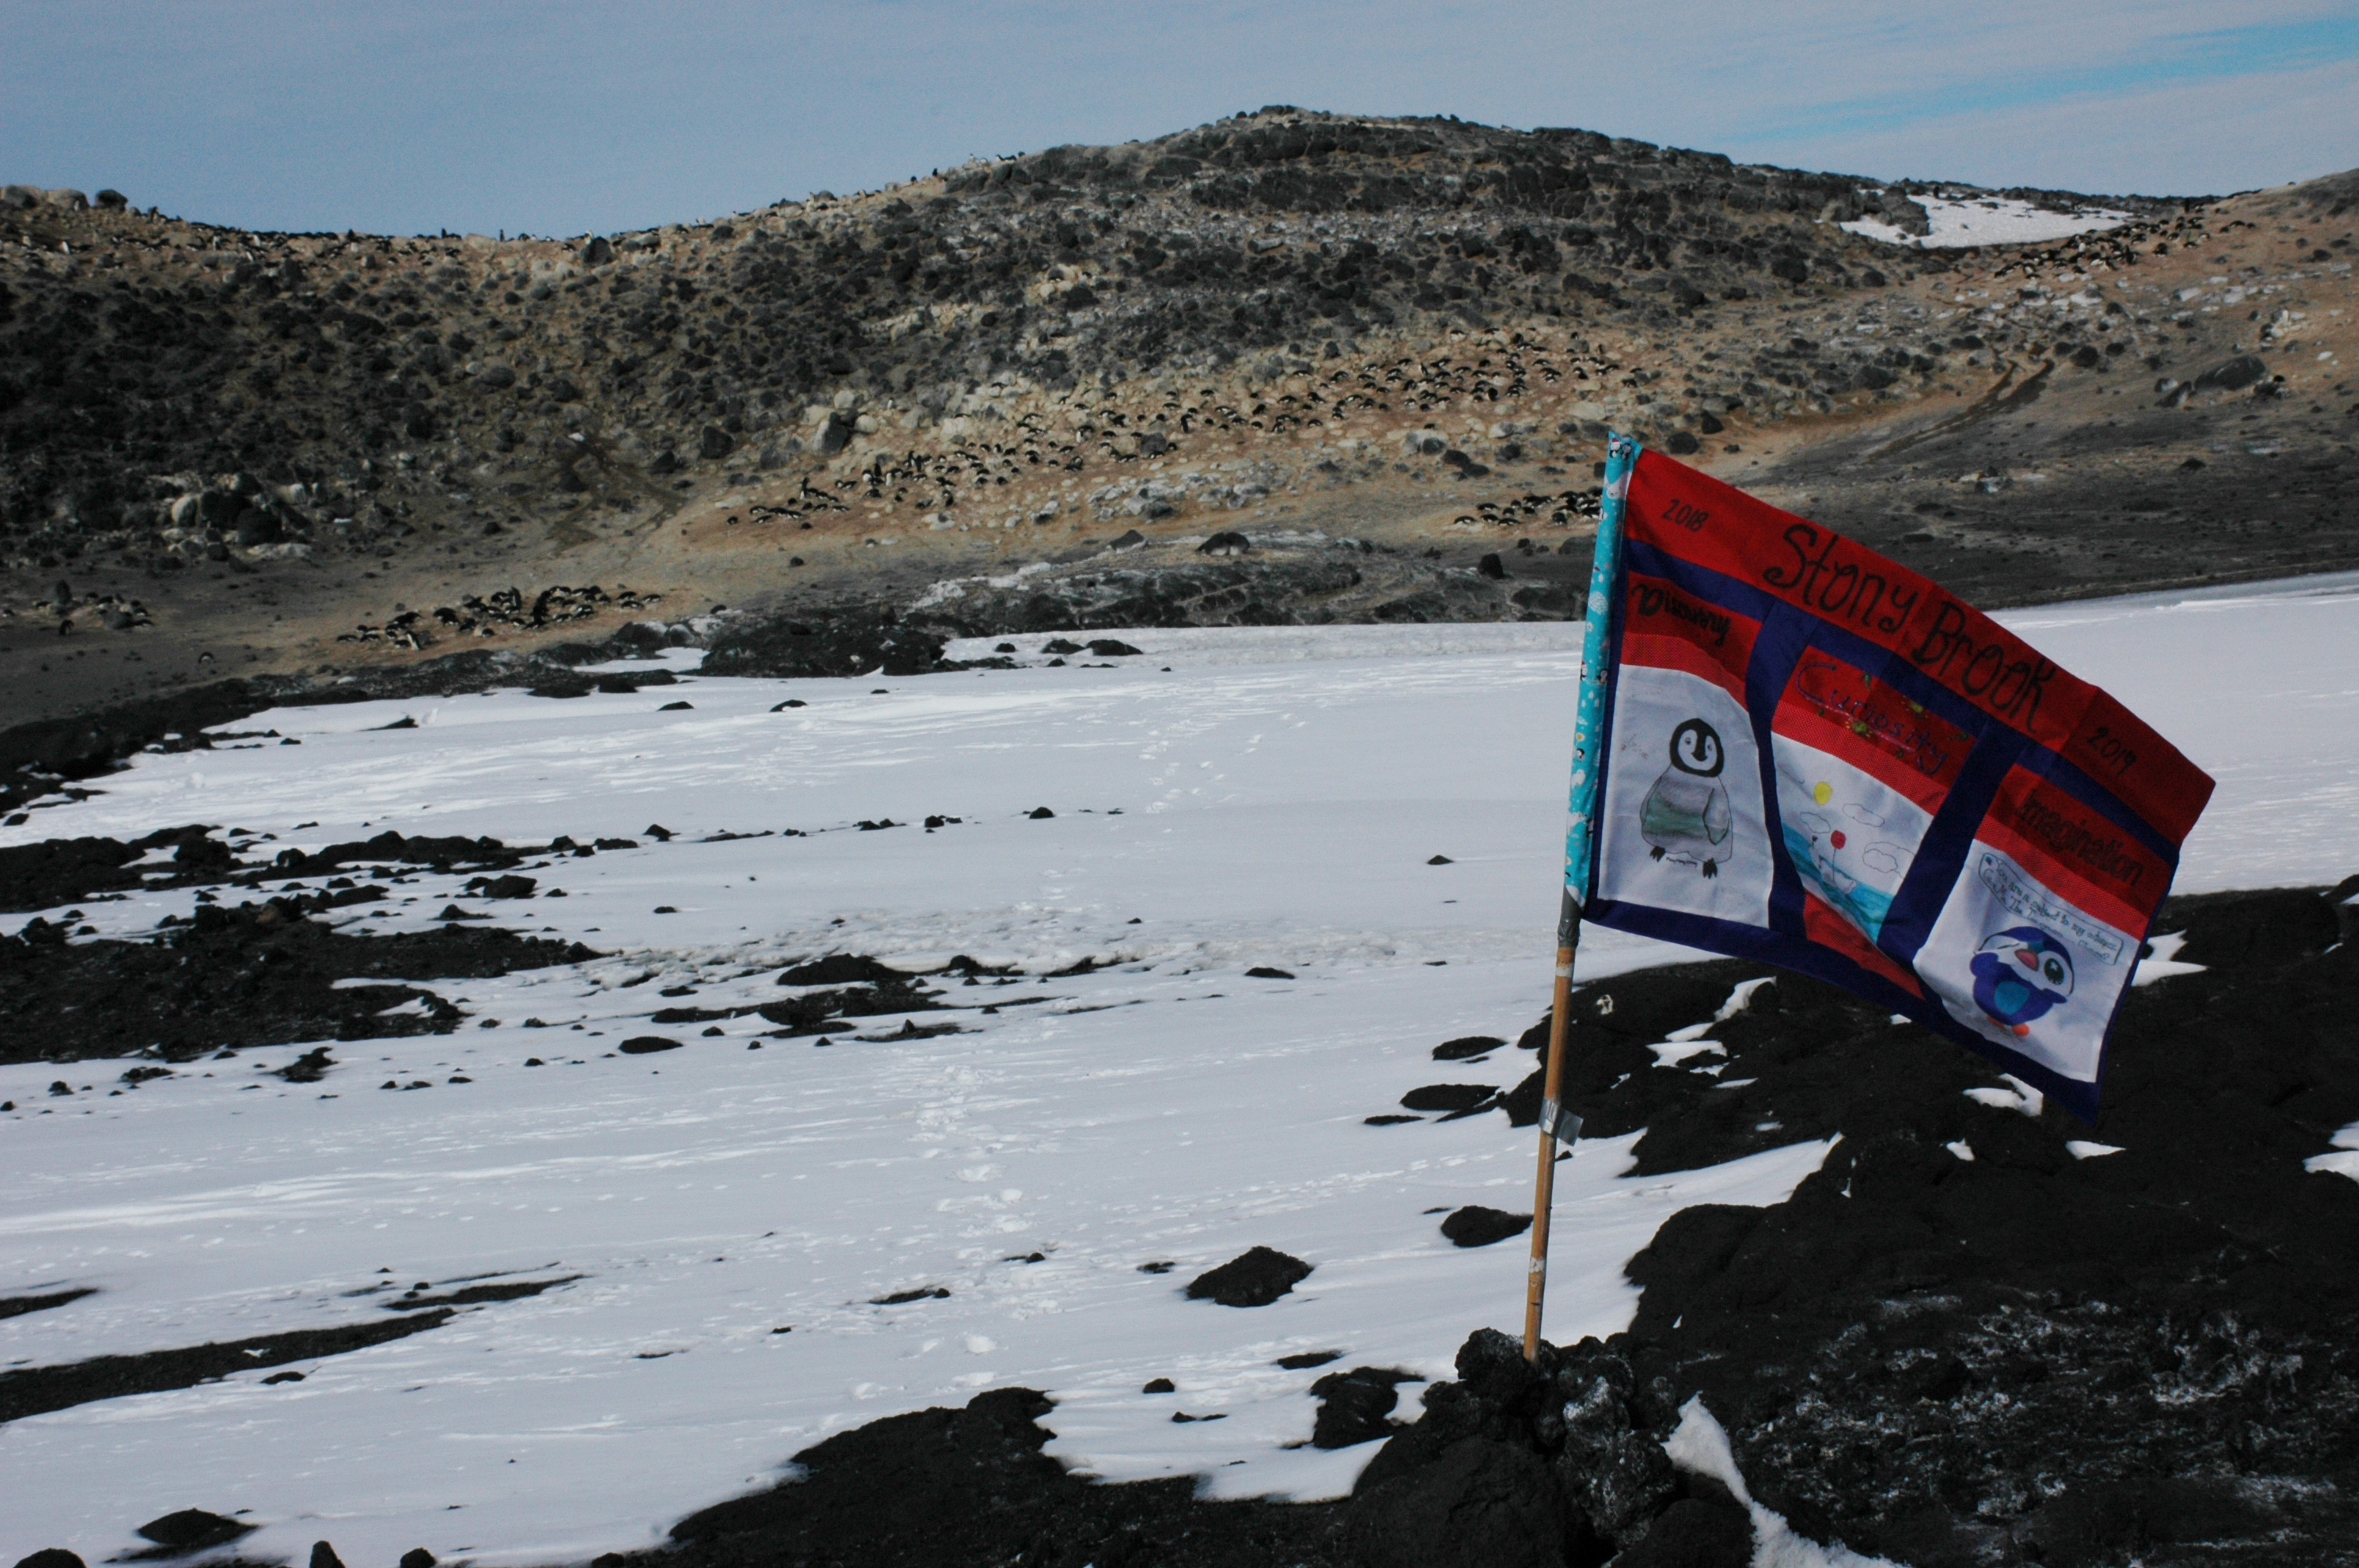 An SB Flag created by 2018 Gr6 students with all of their names flying in Antarctica at a research facility.